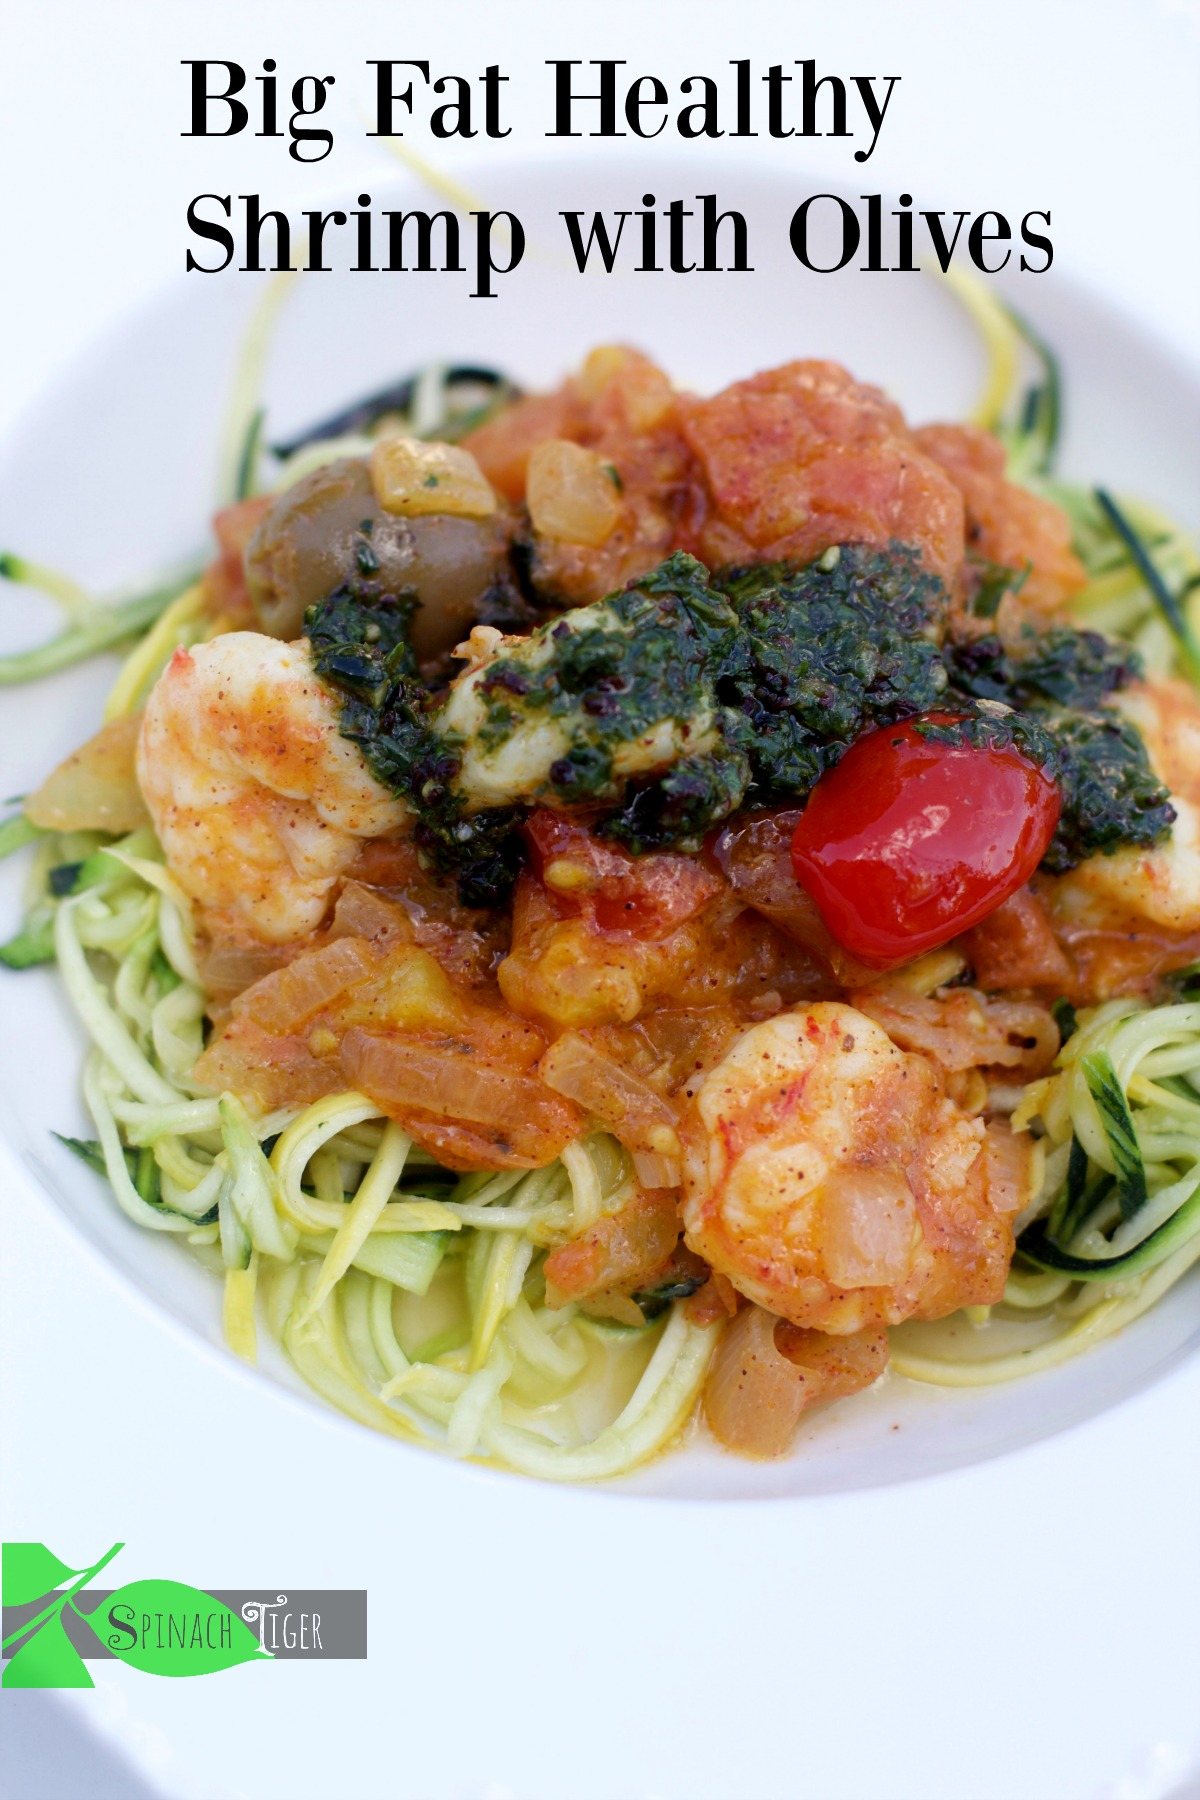 Big Fat Healthy Shrimp Recipes with zoodles from Spinach Tiger